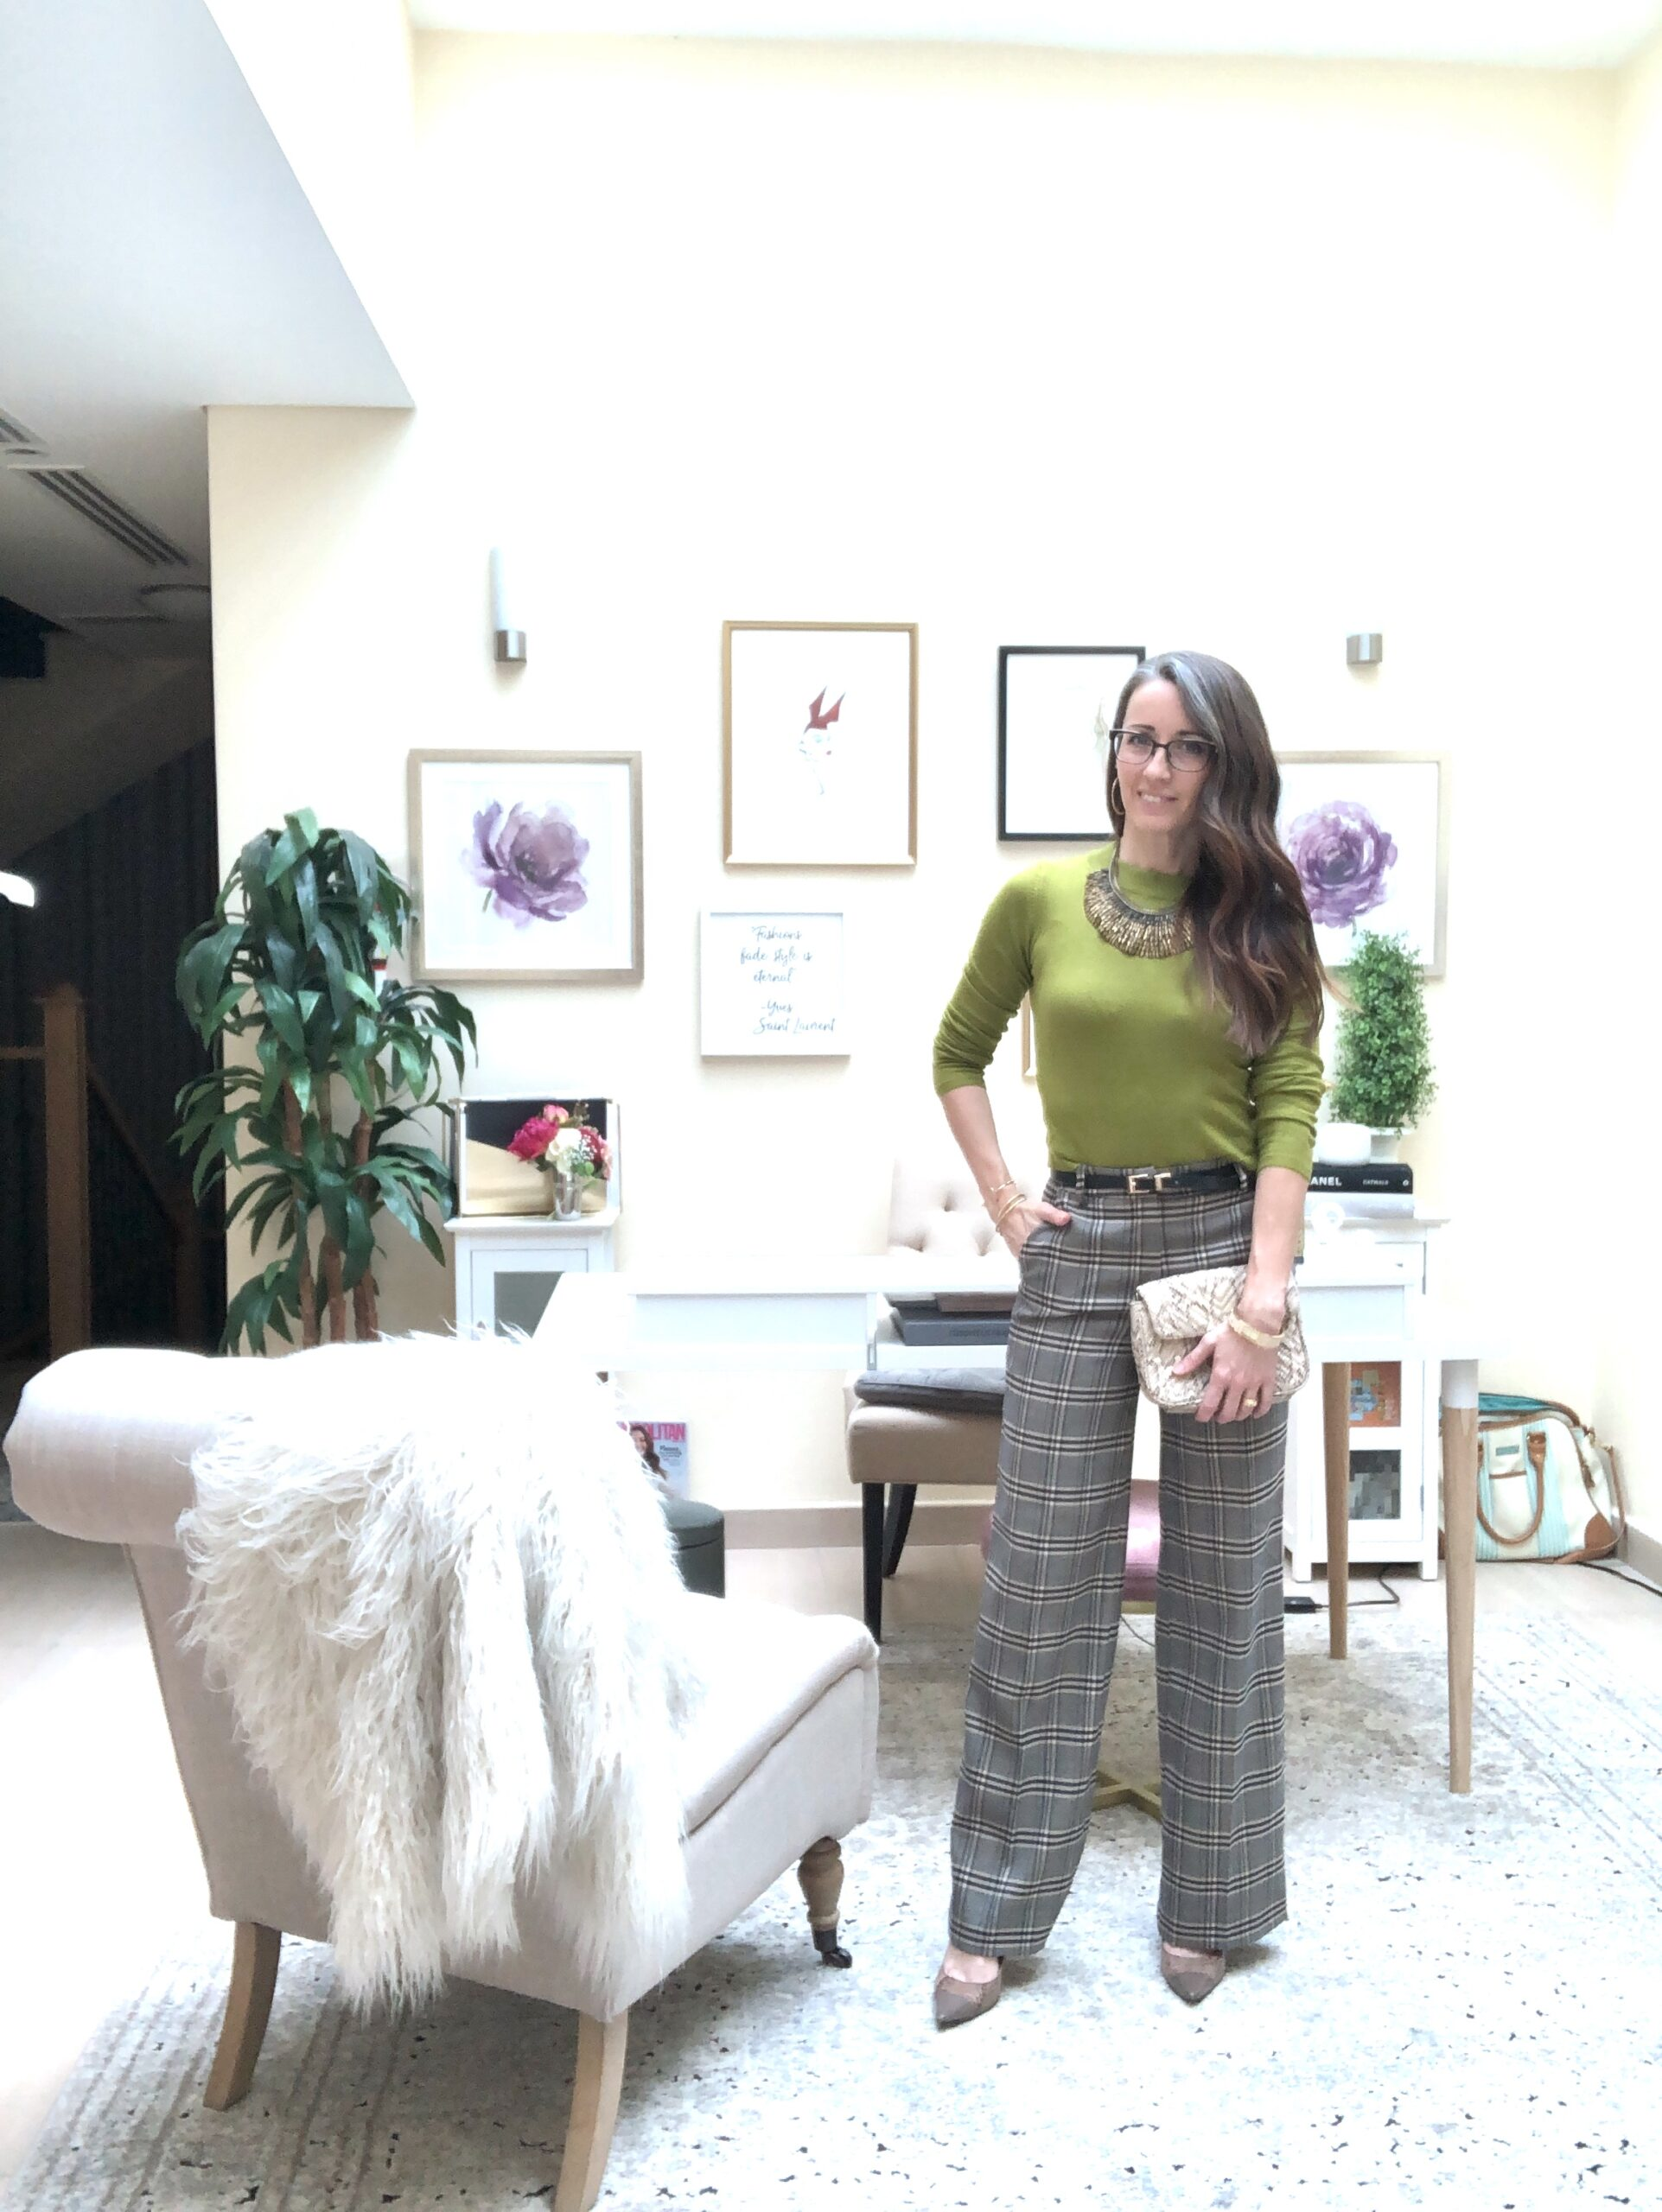 method39, style advice, method makeover, style advisor, versatility, wear it now, find your style, chartreuse, new favorite color, try new things, mix old with new